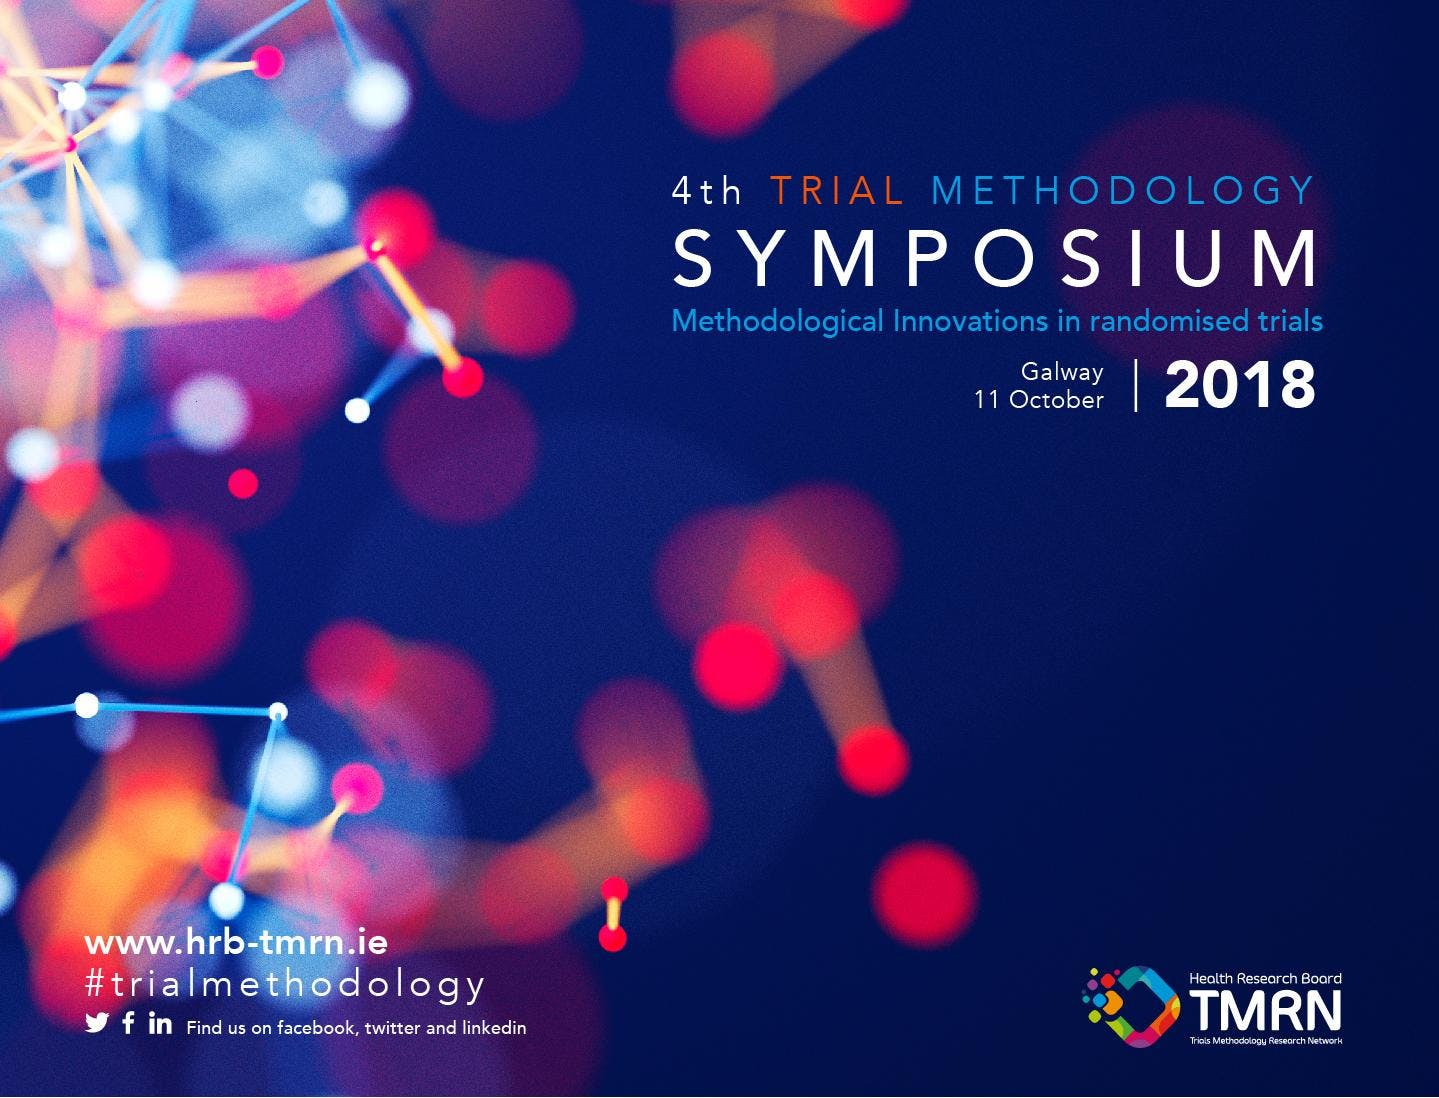 4th Trial Methodology Symposium 2018